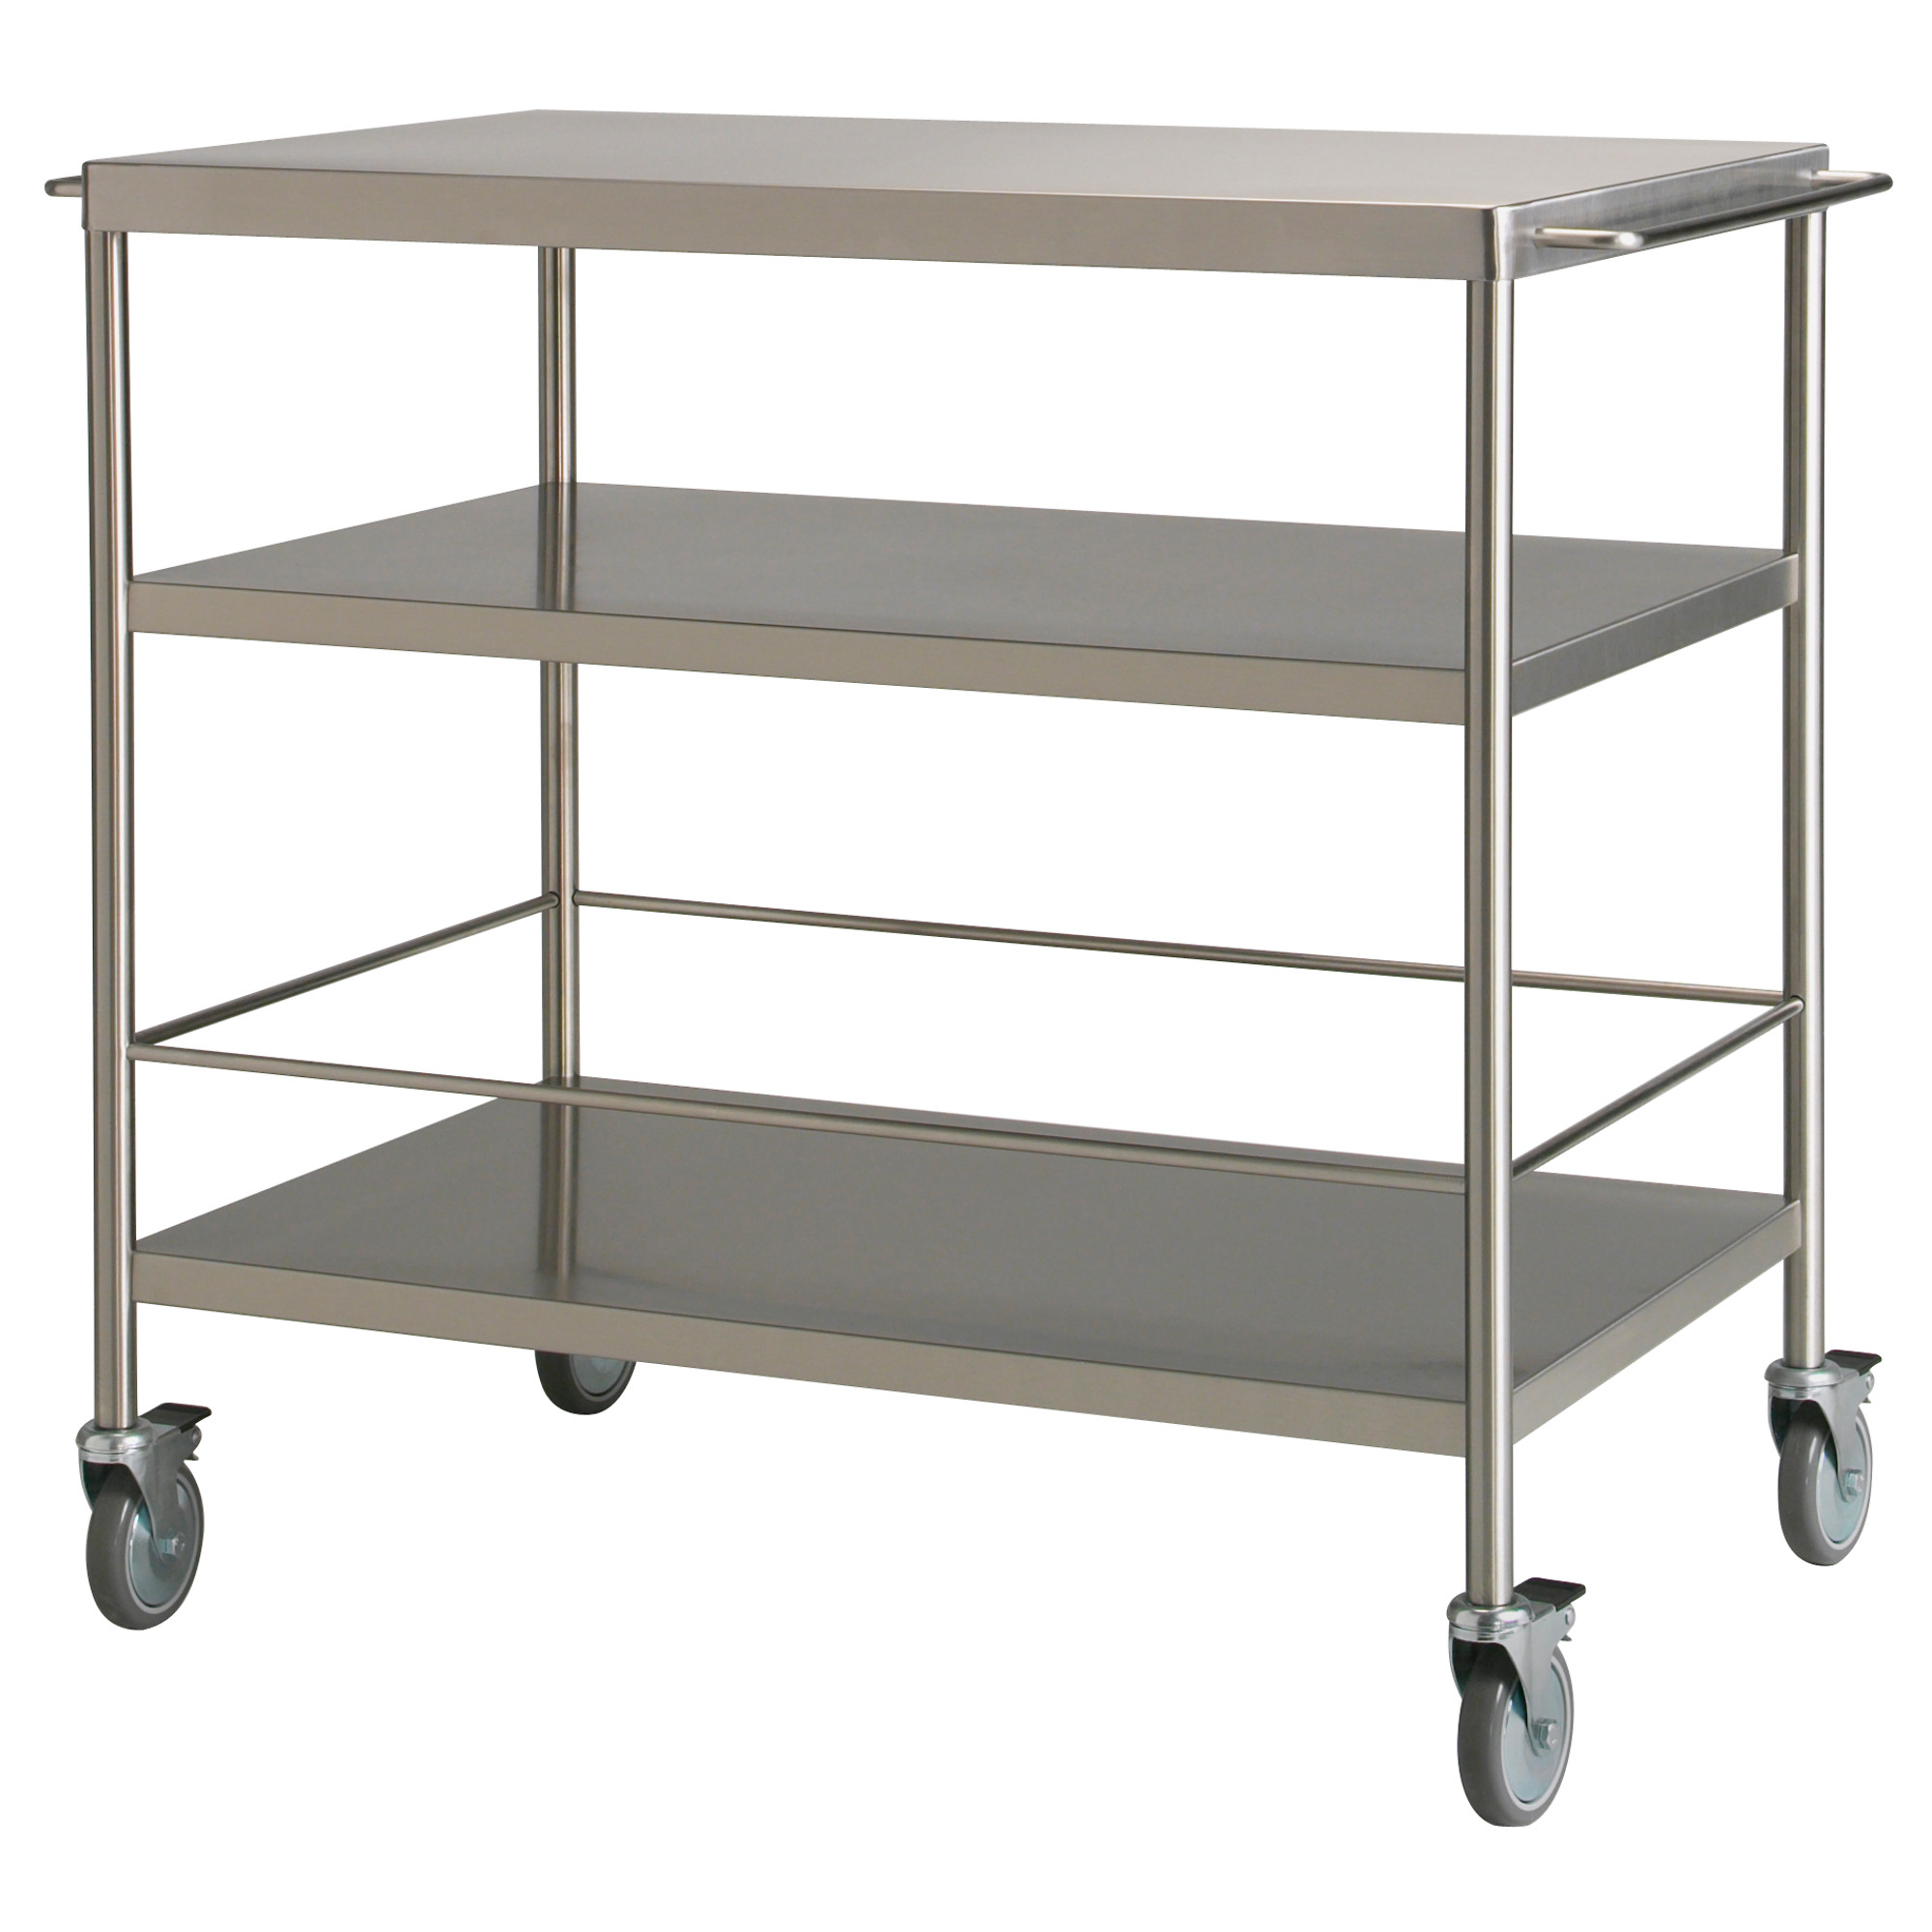 Incroyable Microwave Cart Ikea In Steel With Wheel And Shelving For Home Kitchen  Furniture